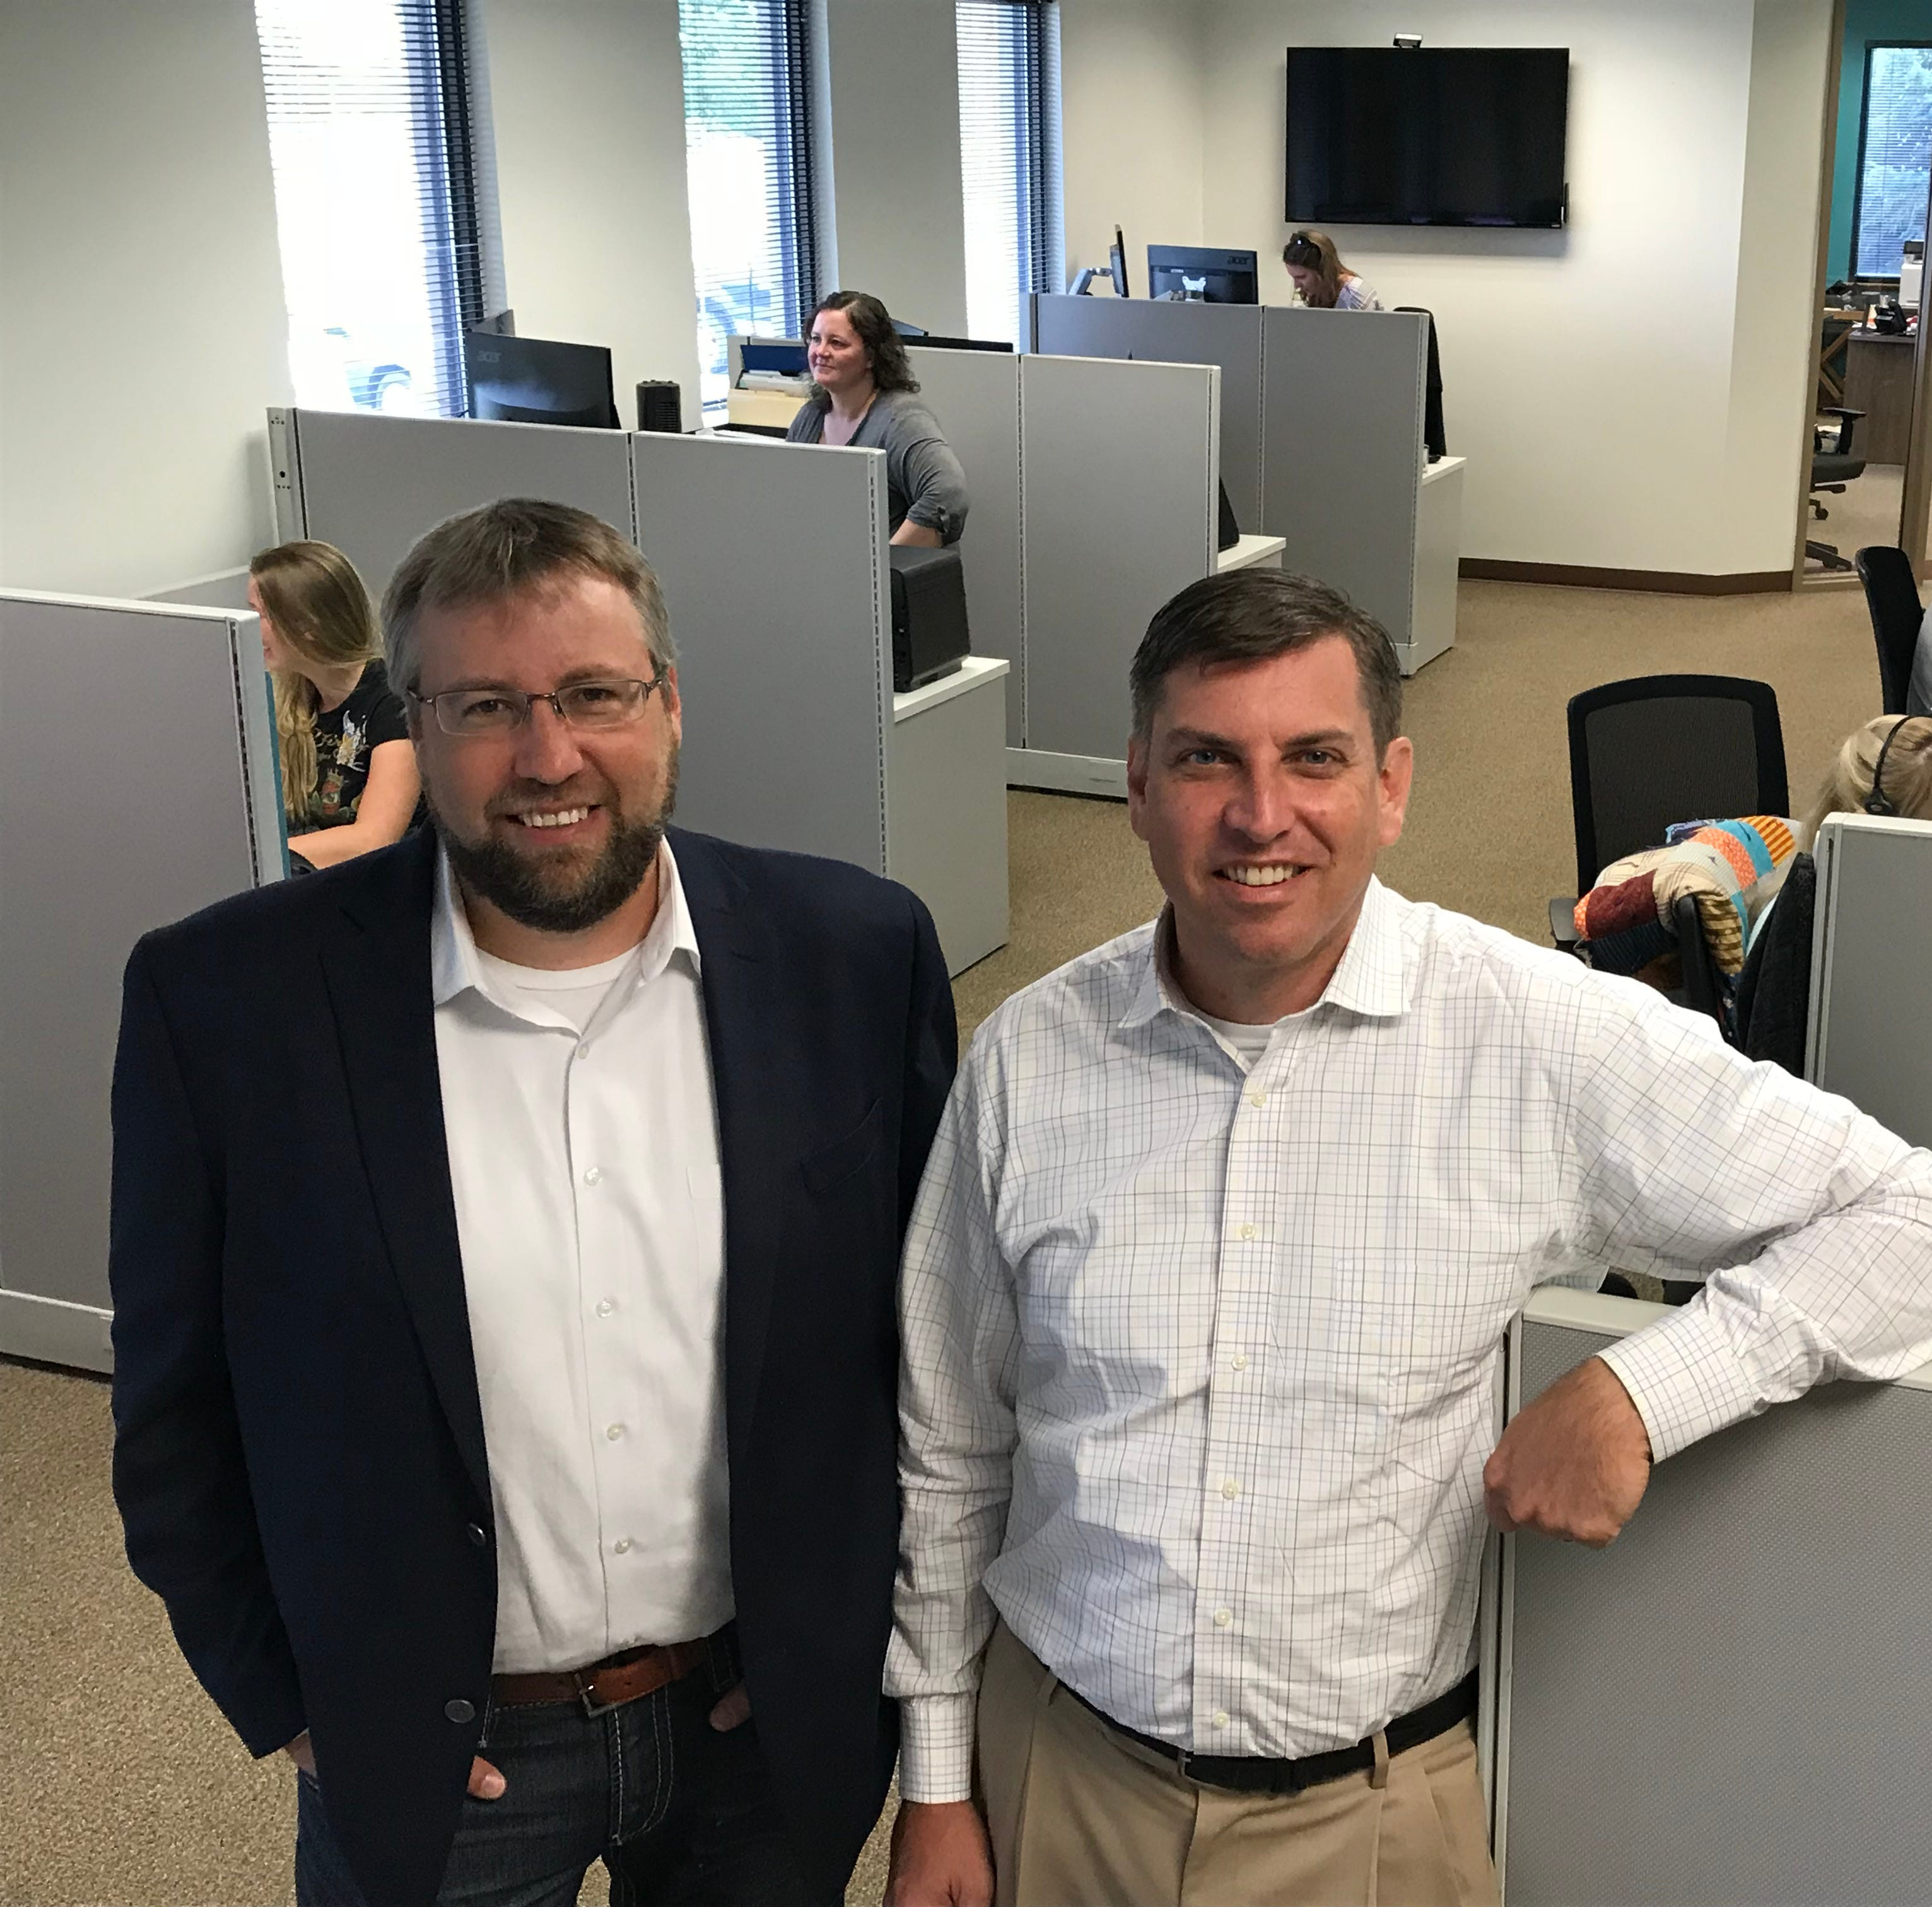 Go, go, growth: Here's what's working for Sioux Falls' fastest growing companies